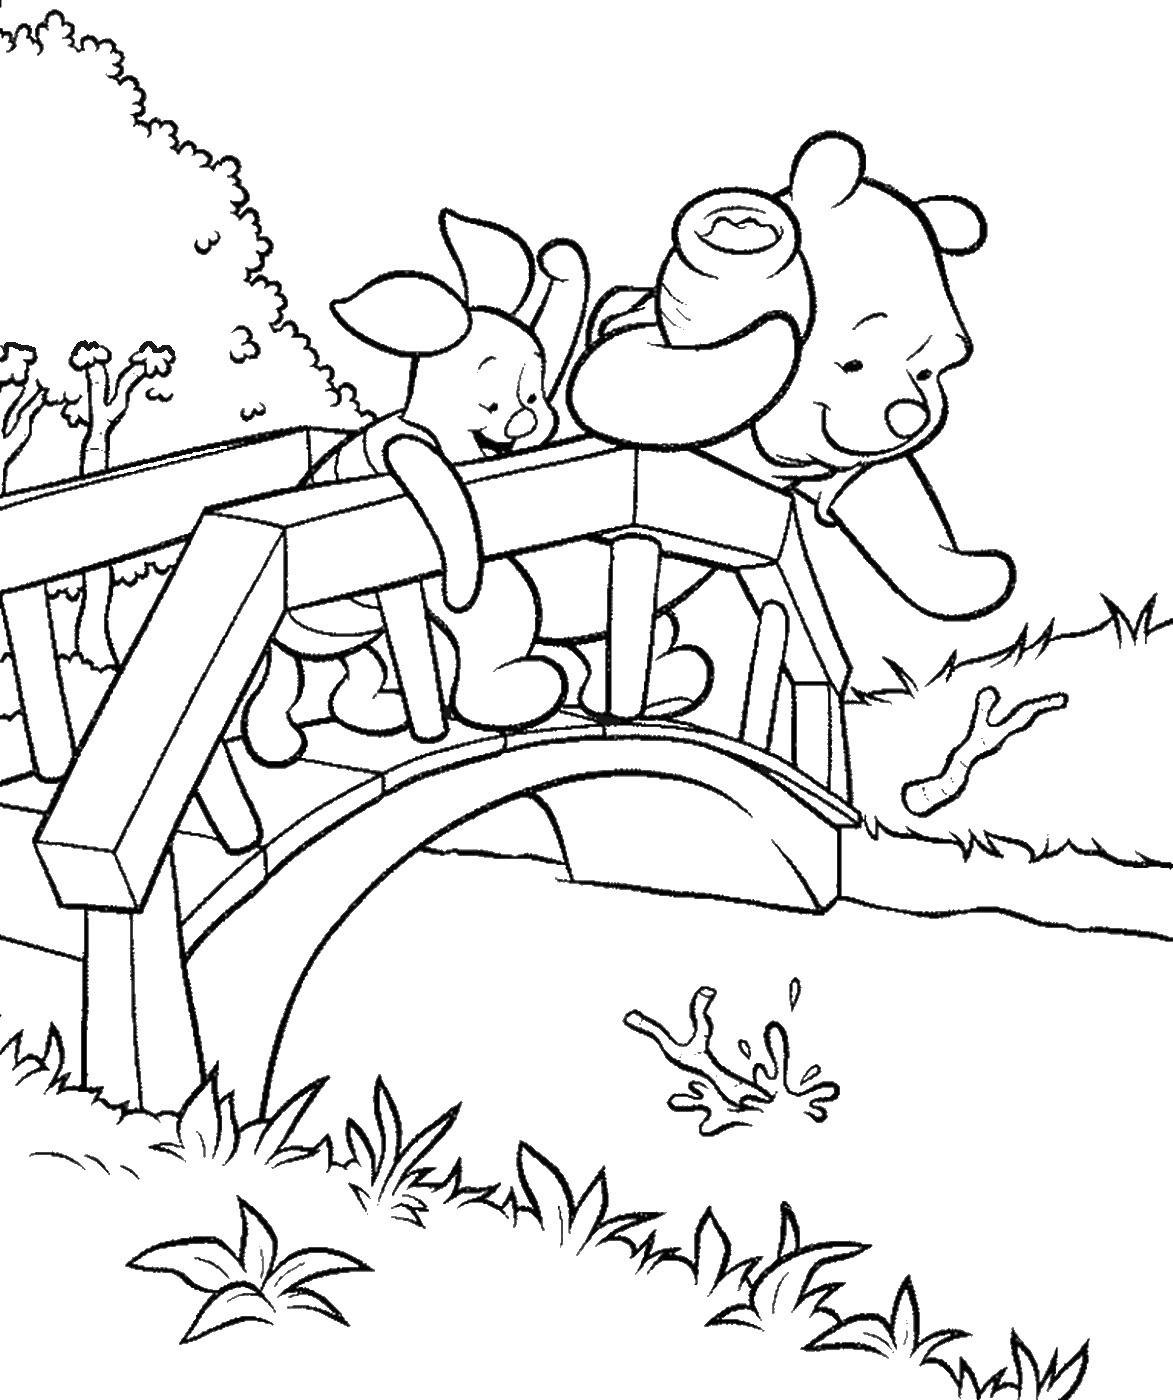 coloring pictures winnie the pooh winnie the pooh coloring pages pictures pooh coloring winnie the